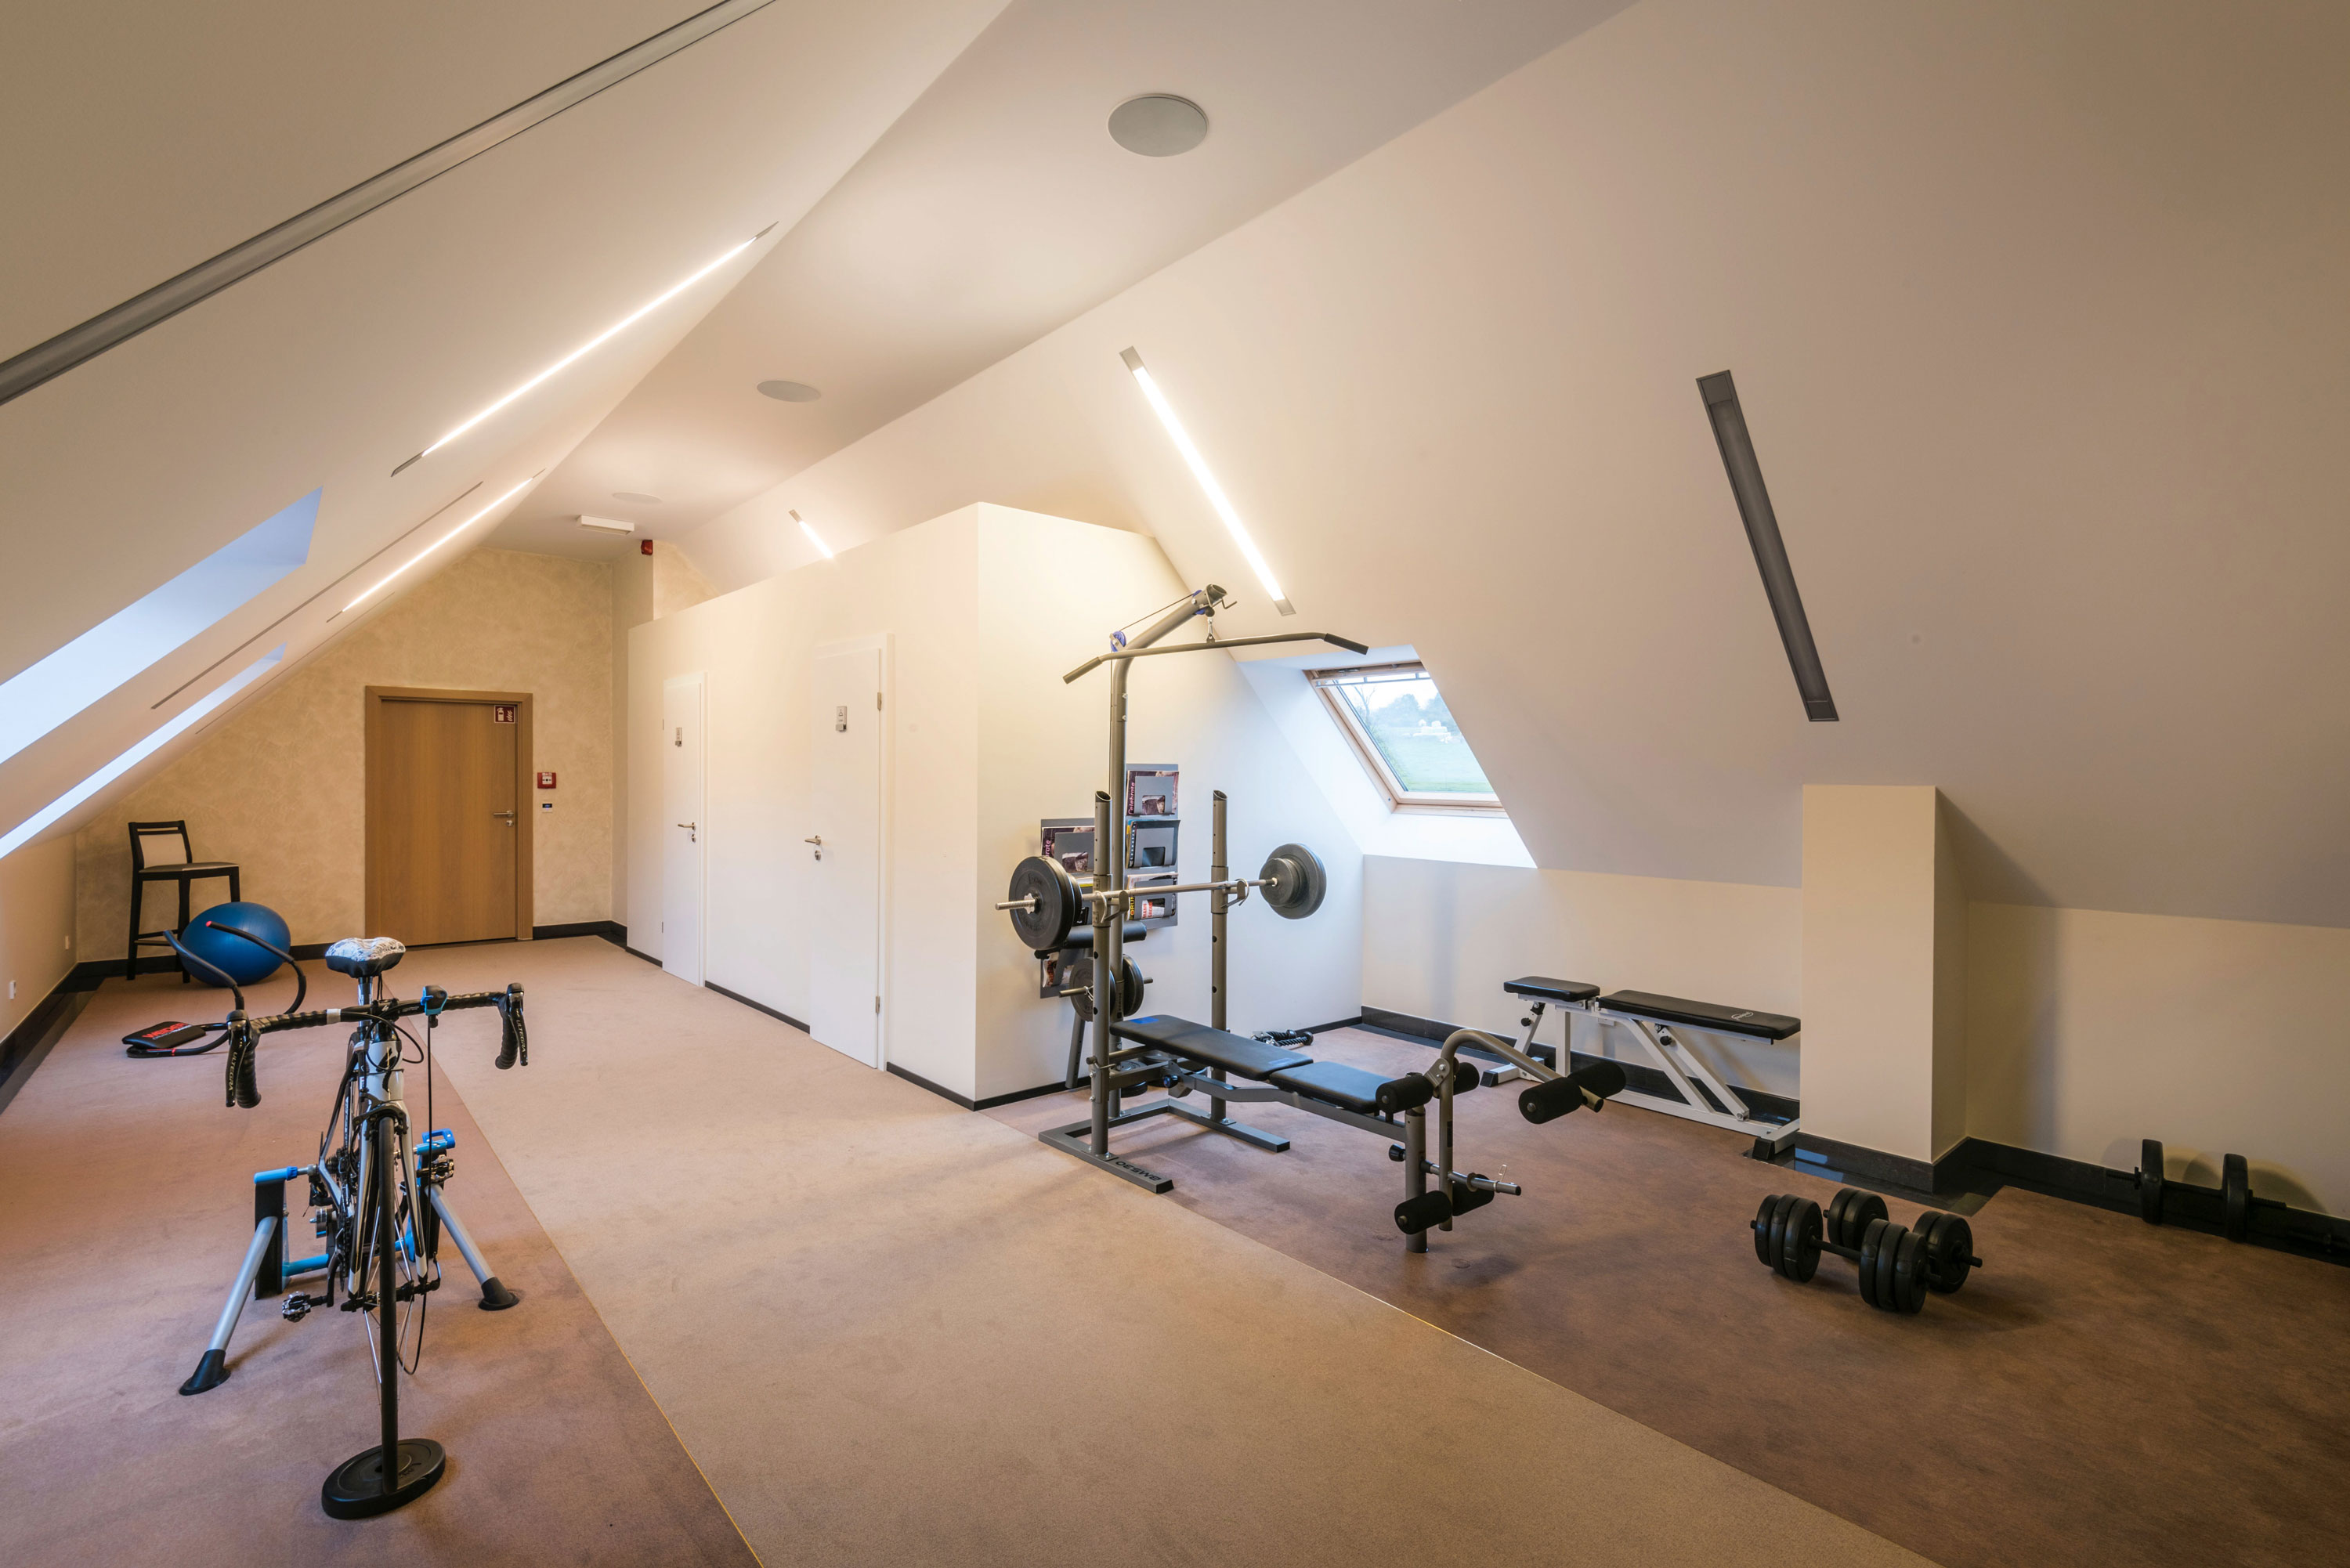 Gym equipment in an attic room